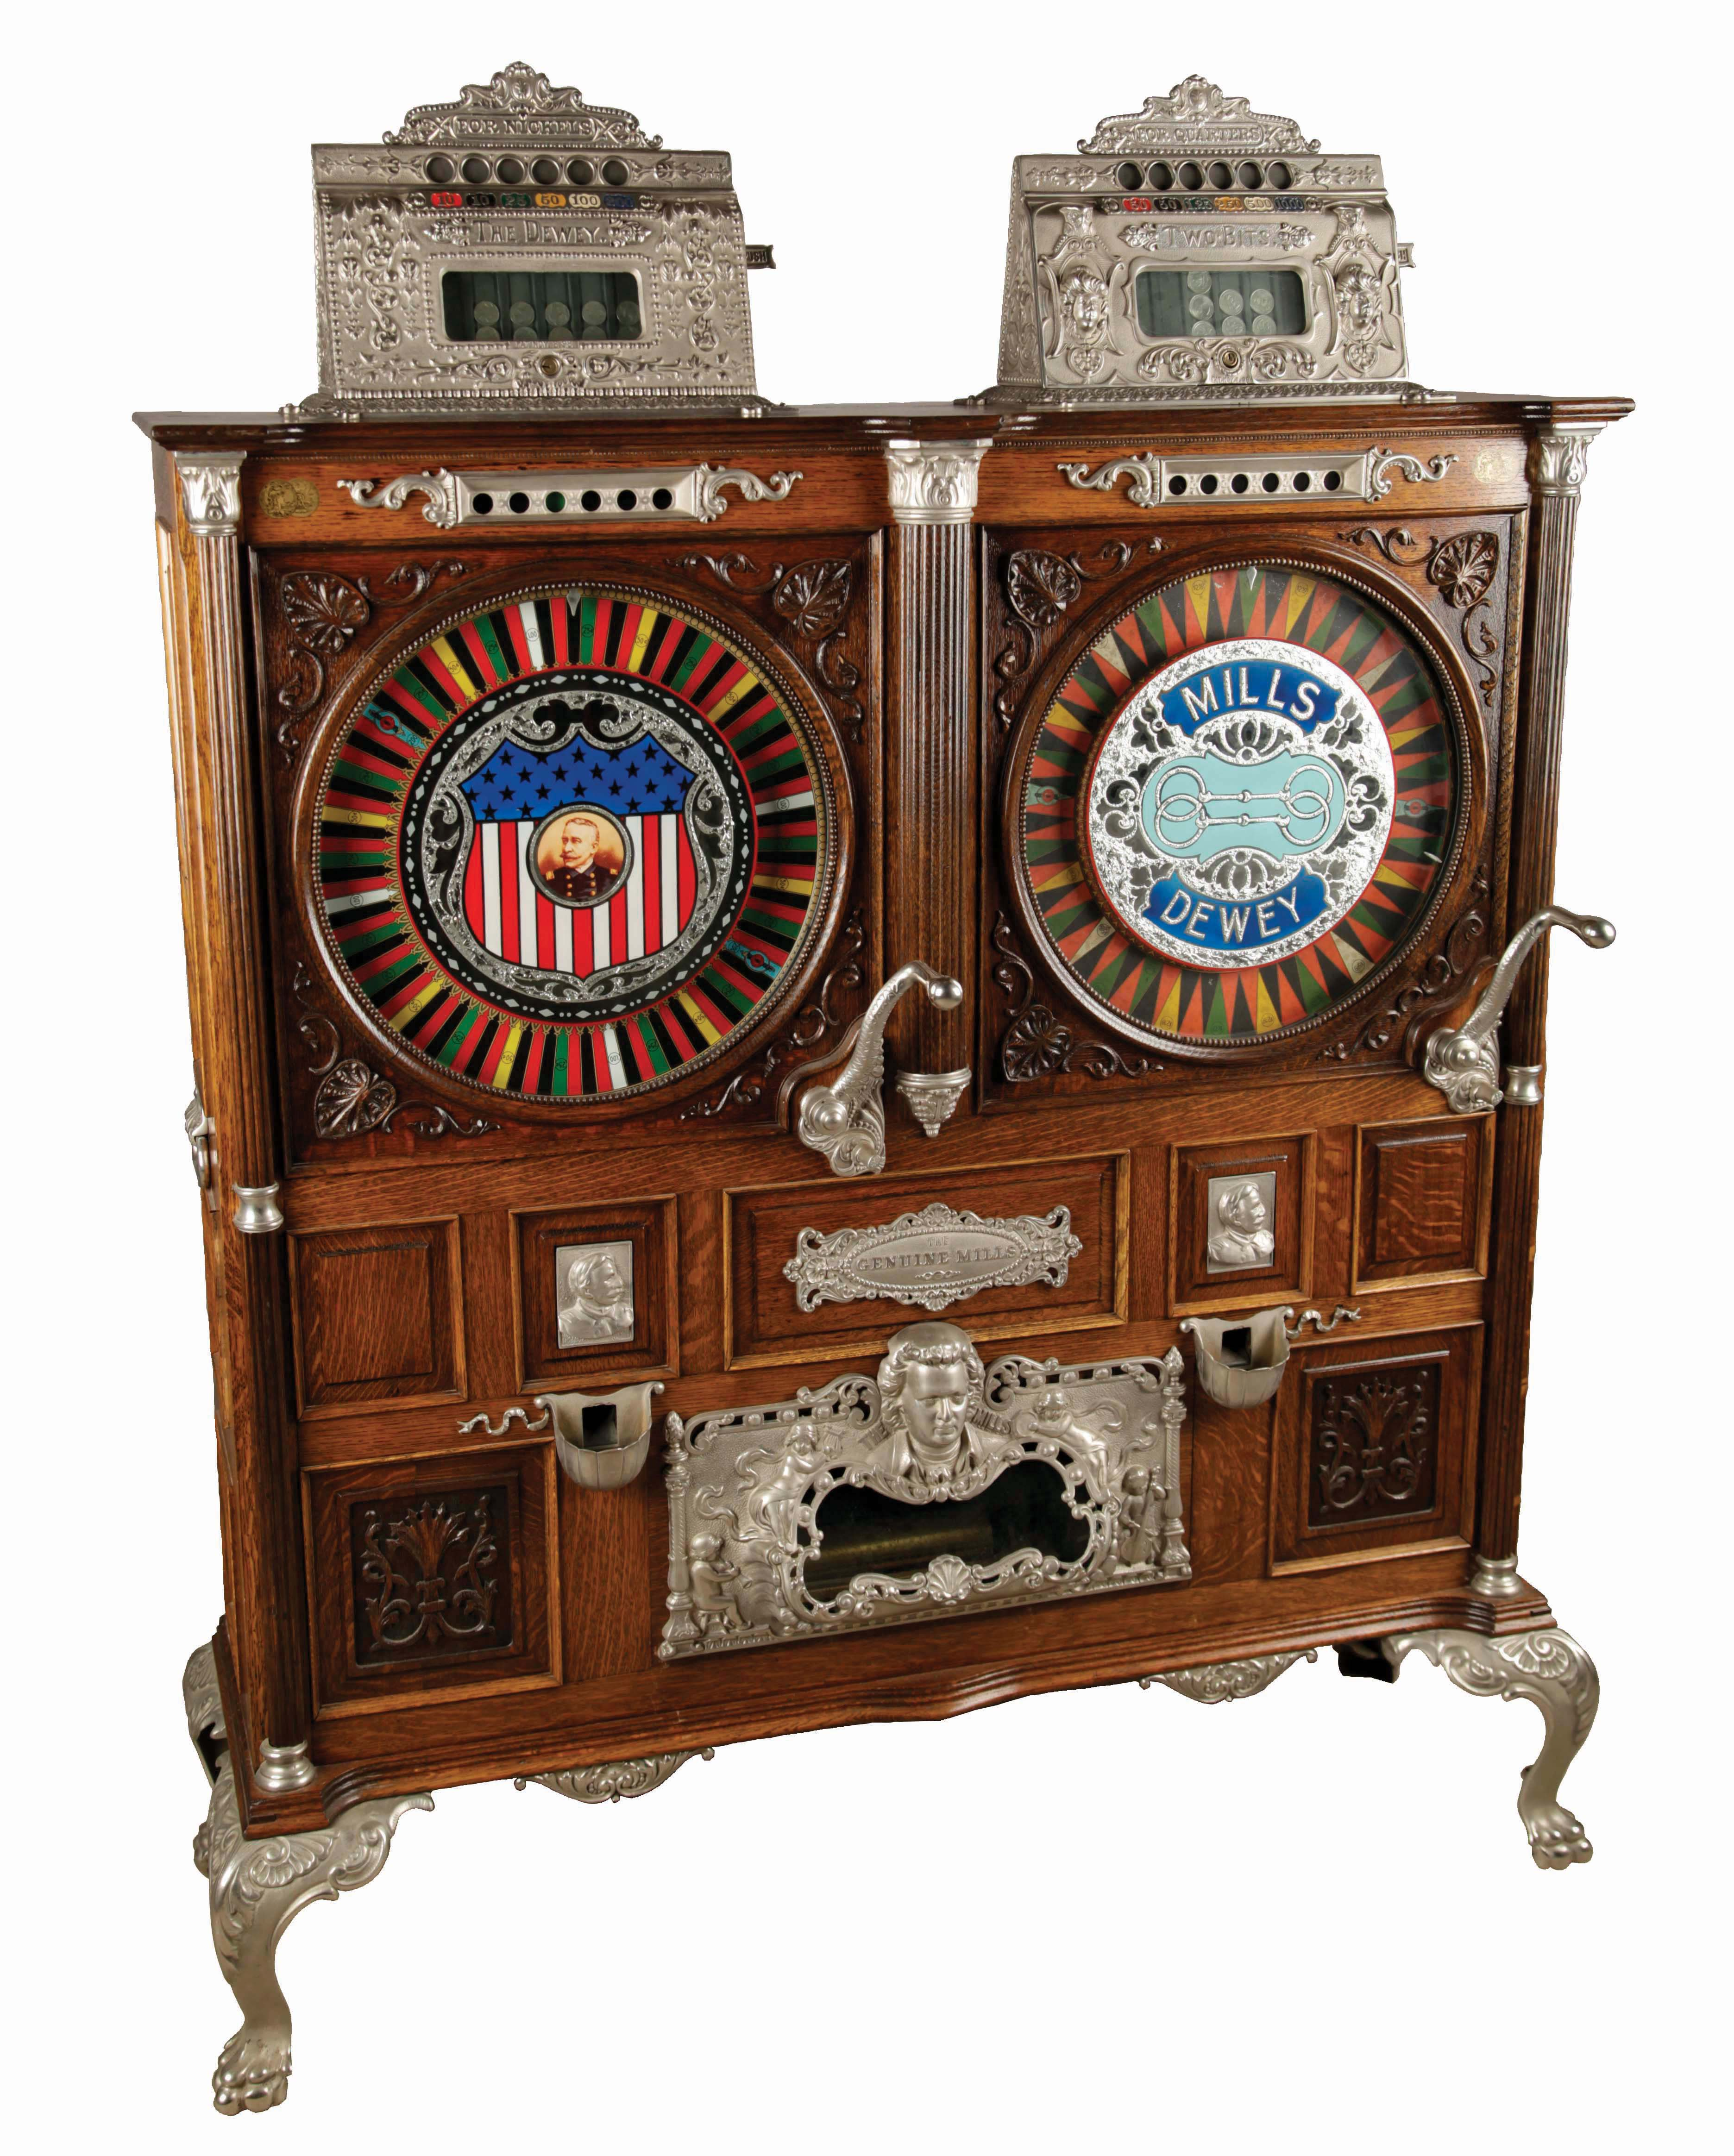 5¢, 25¢ Mills Novelty Co. Double Dewey Musical Upright Slot Machine